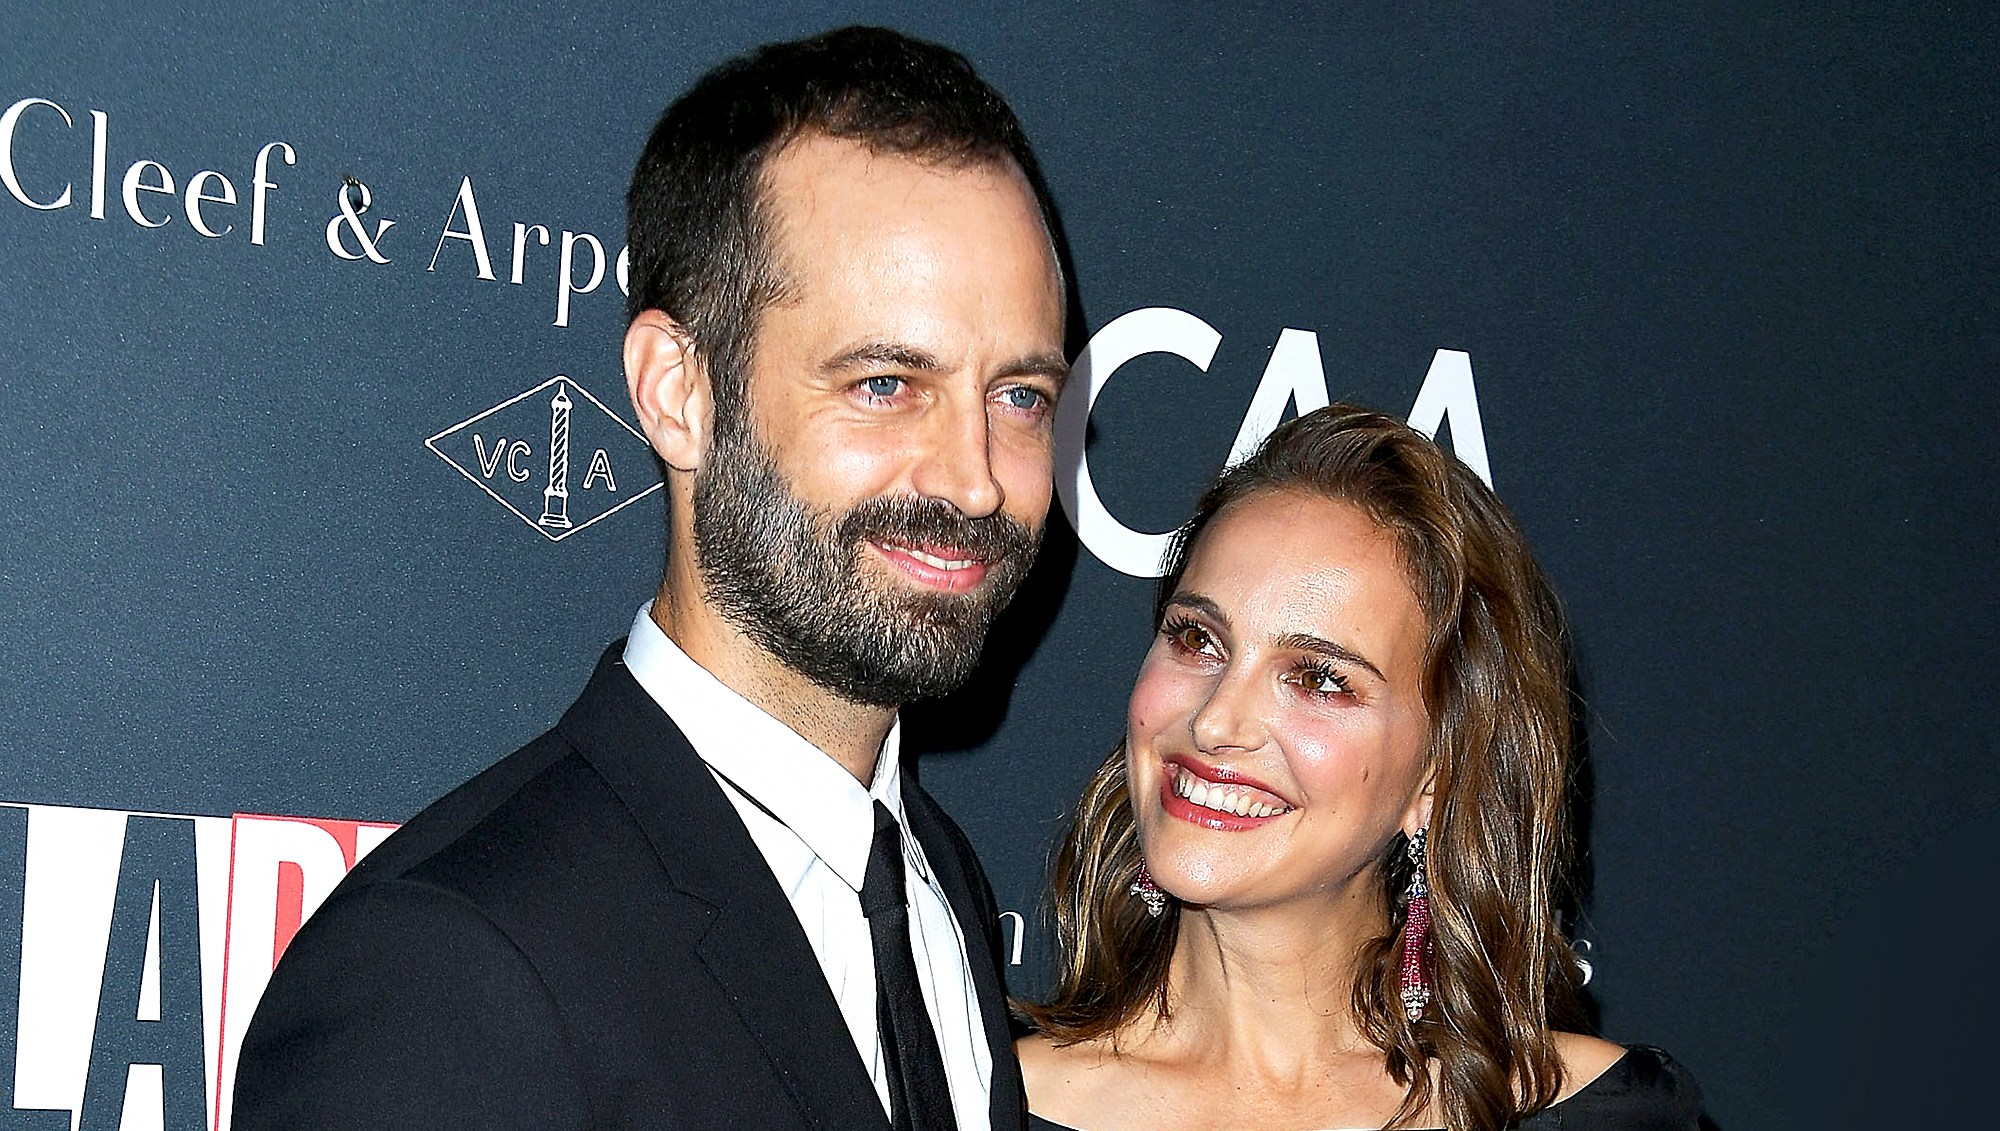 Benjamin Millepied and Natalie Portman arrives at the L.A. Dance Project's Annual Gala at L.A. Dance Project on October 7, 2017 in Los Angeles, California.